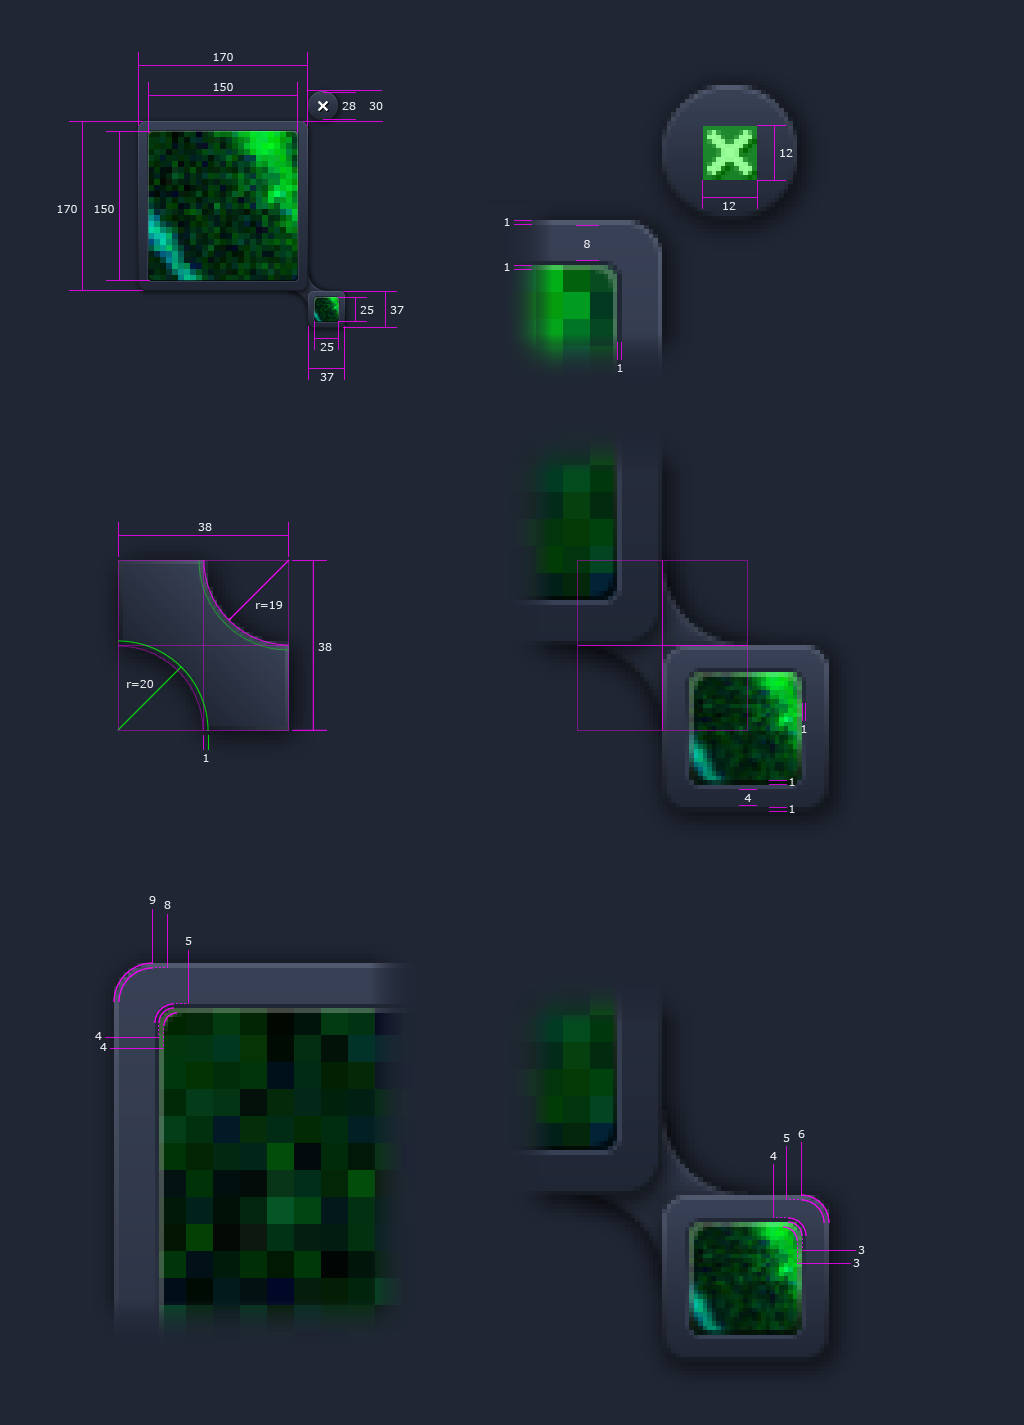 Magnifier_MAG_Dimensions_01.png